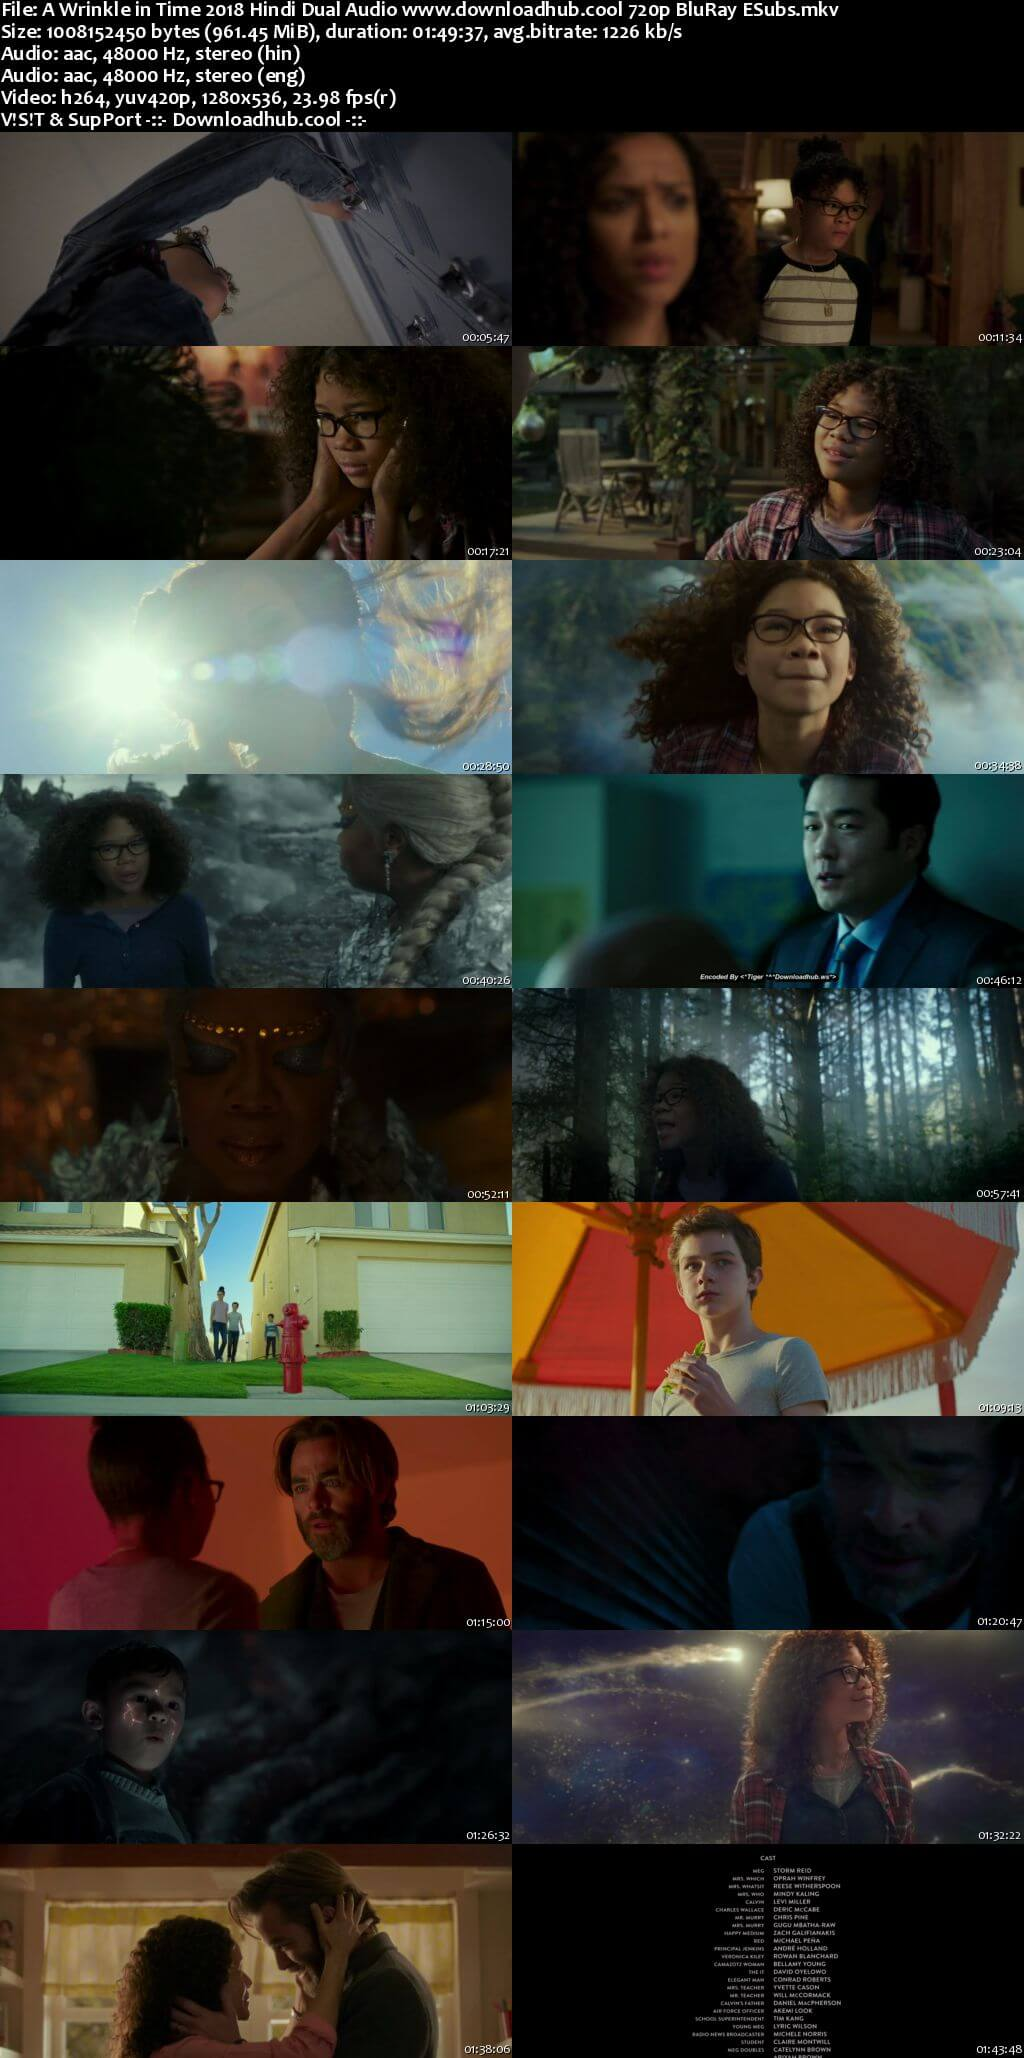 A Wrinkle in Time 2018 Hindi Dual Audio 720p BluRay ESubs